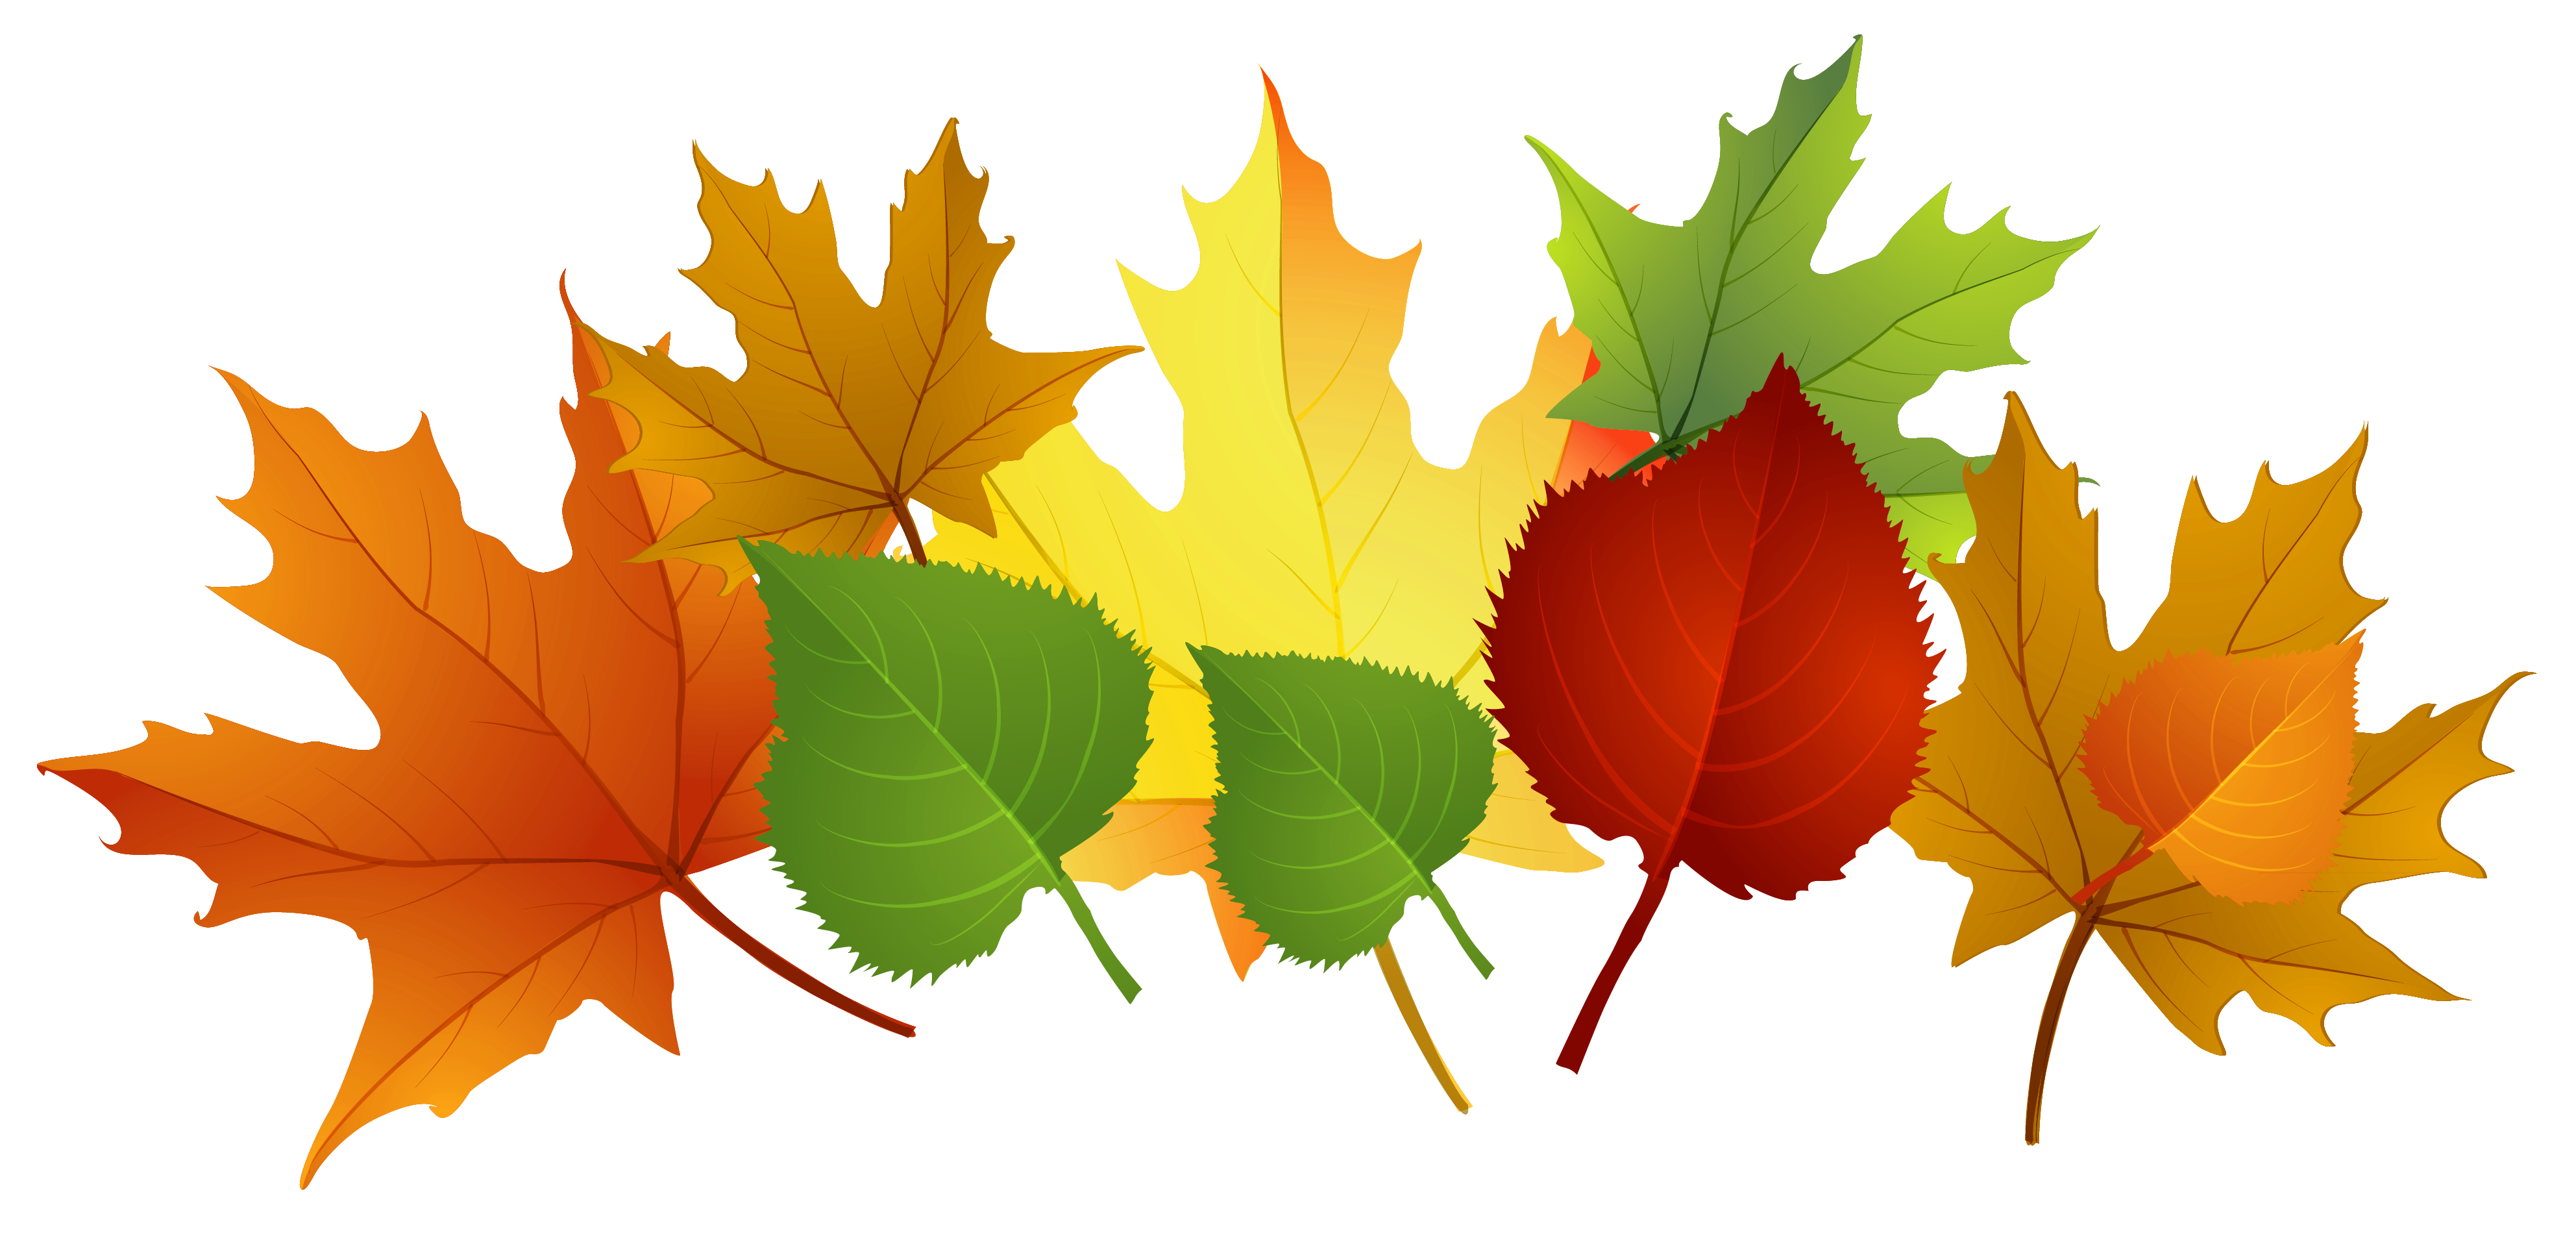 Fall Clip Art Images Free Cliparts Co-Fall Clip Art Images Free Cliparts Co-8